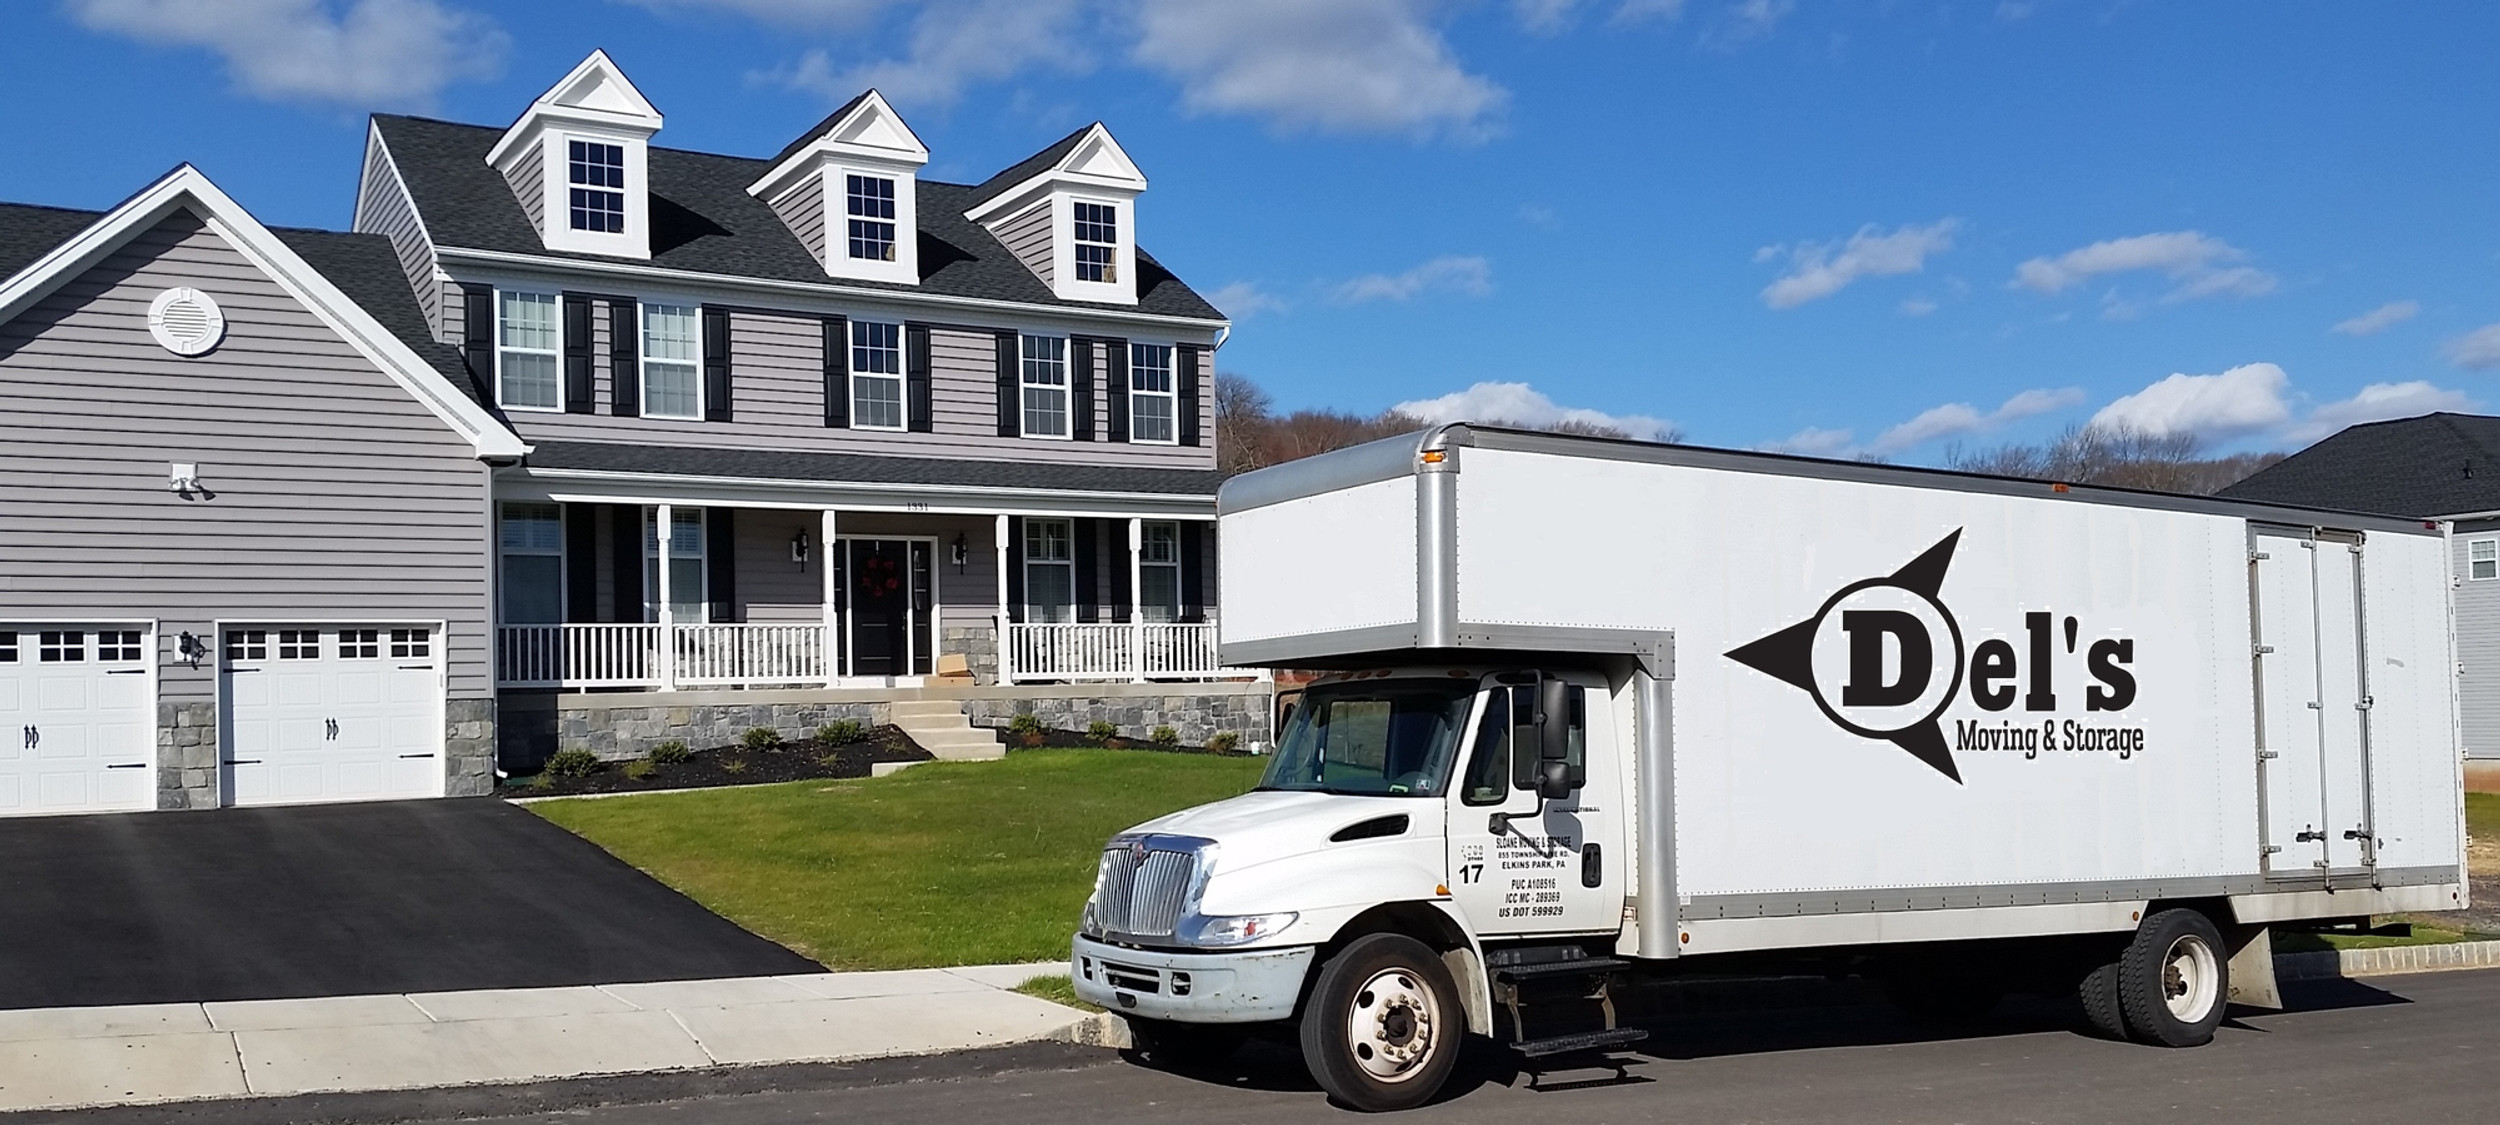 Movers | Moving Company | Del's Moving and Storage